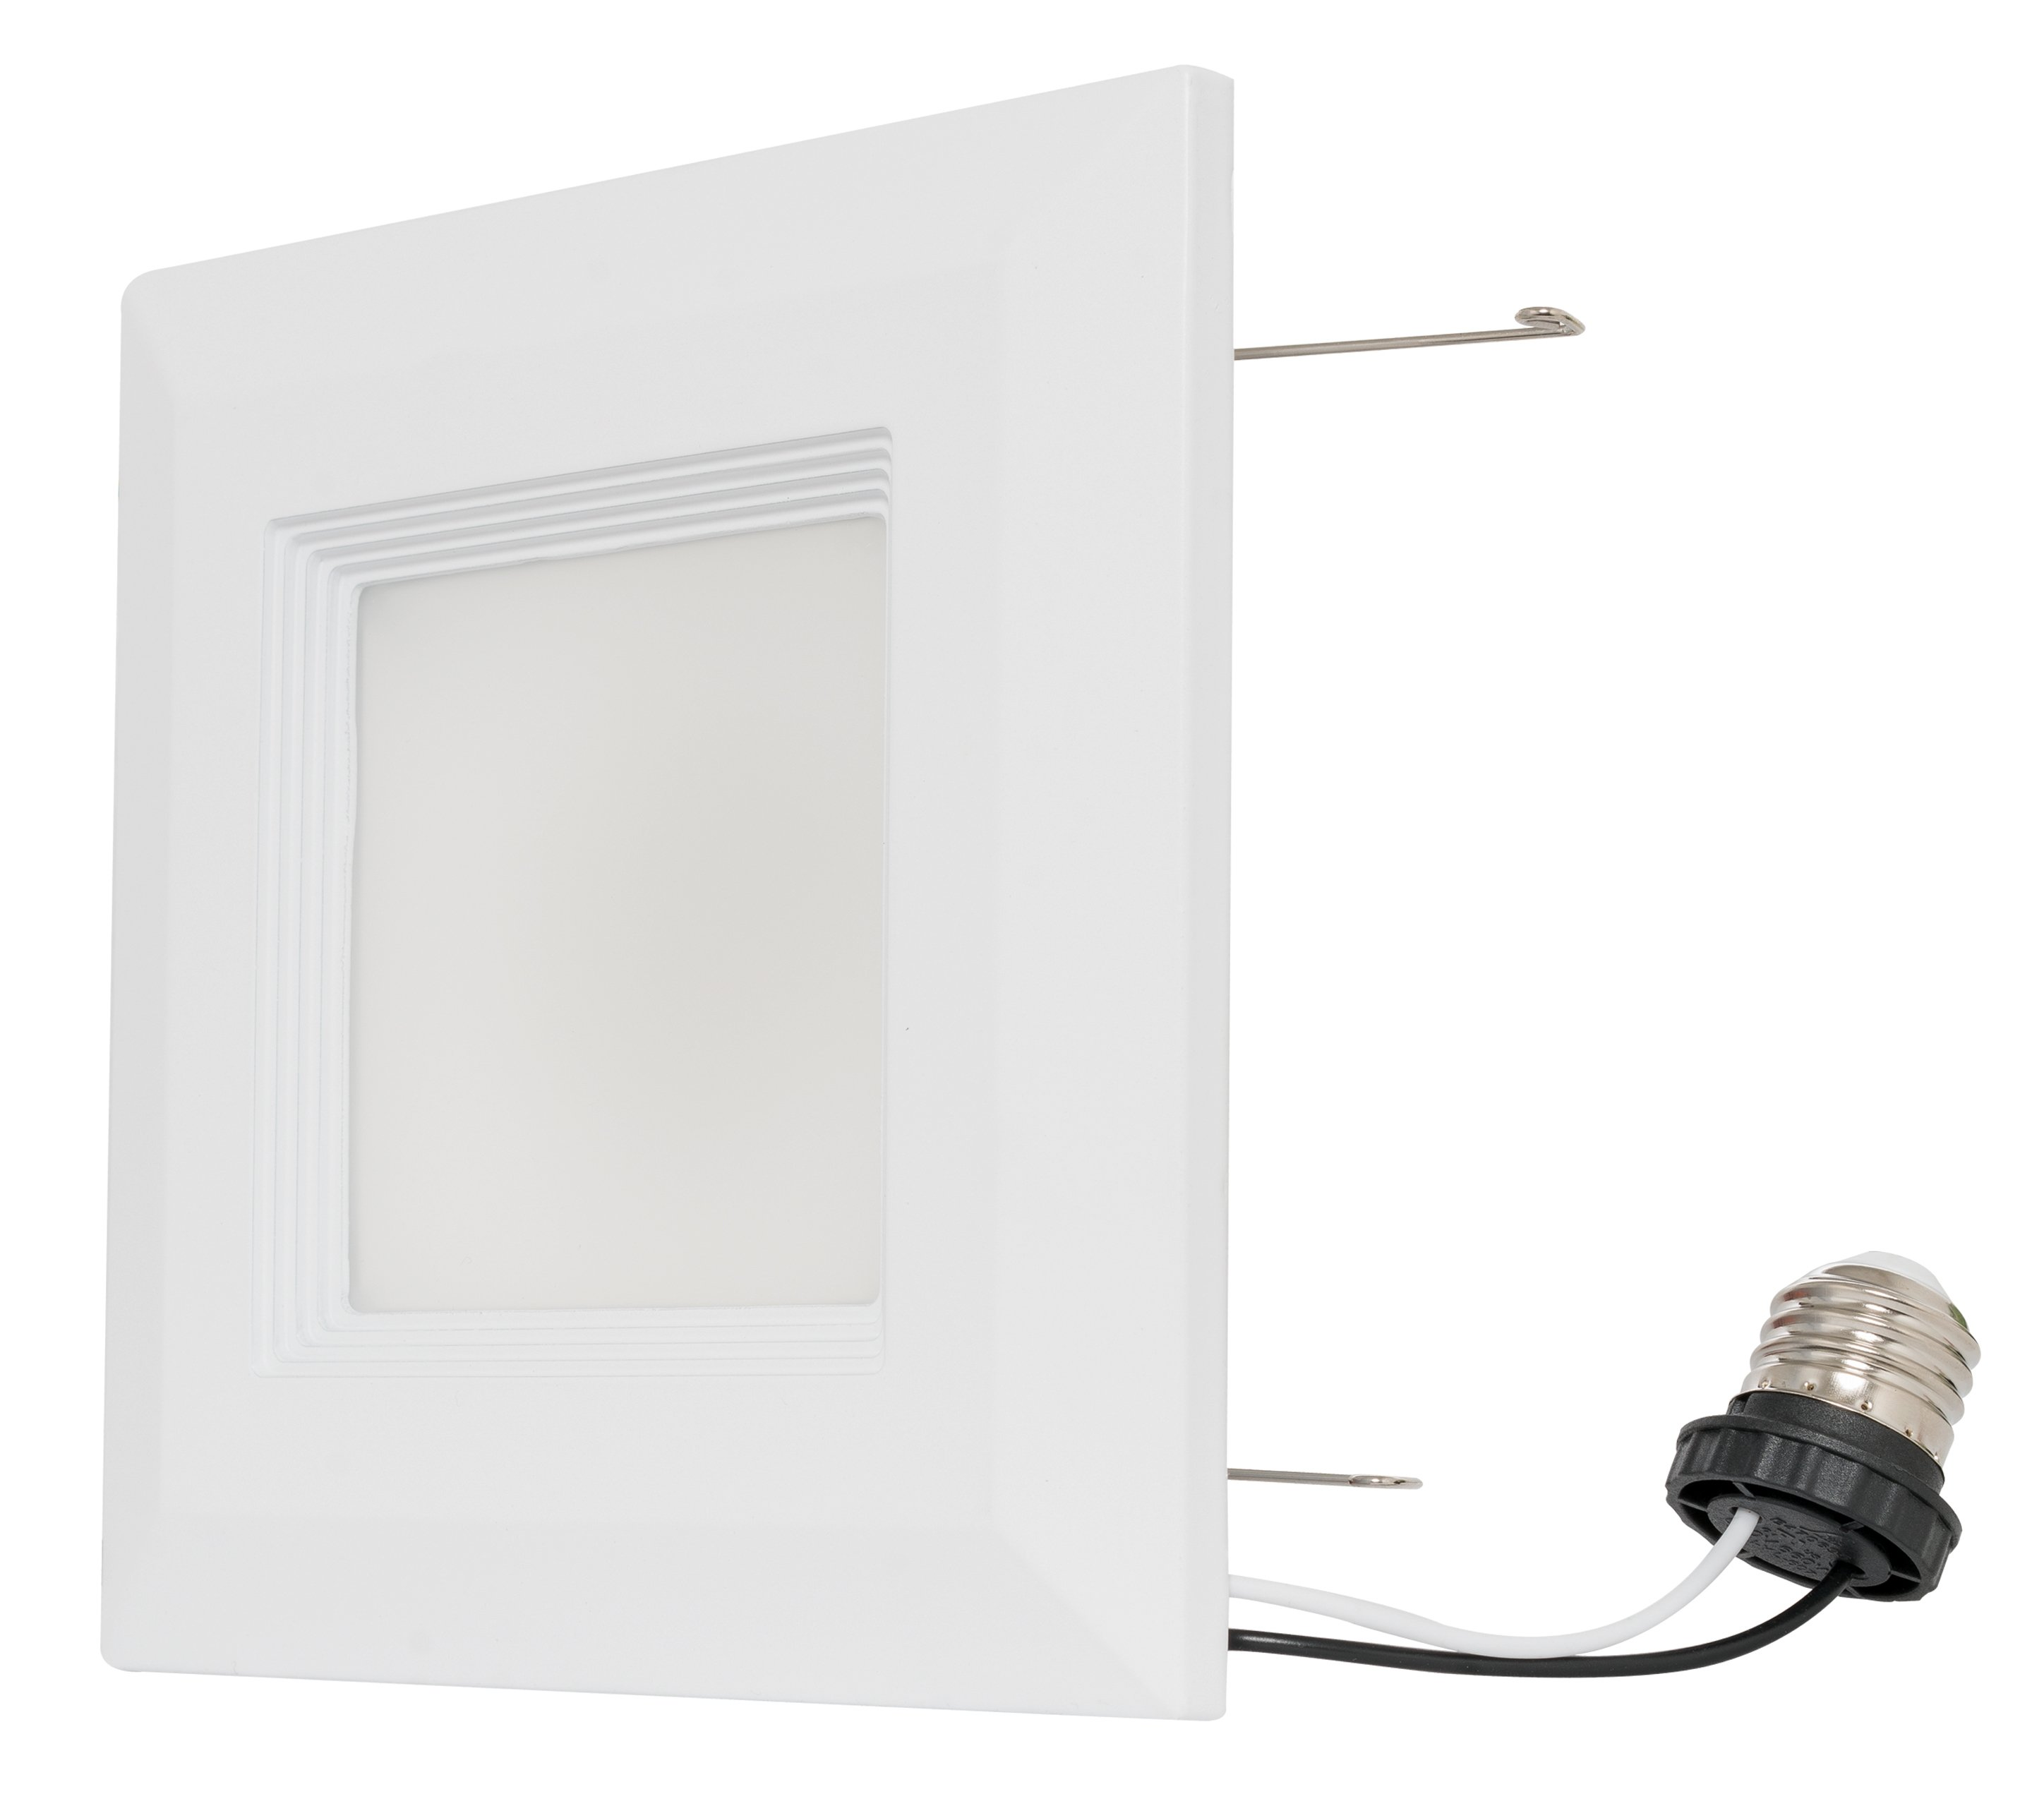 Westgate led square recessed light 6inch retrofit downlight baffle image is loading westgate led square recessed light 6inch retrofit downlight aloadofball Gallery